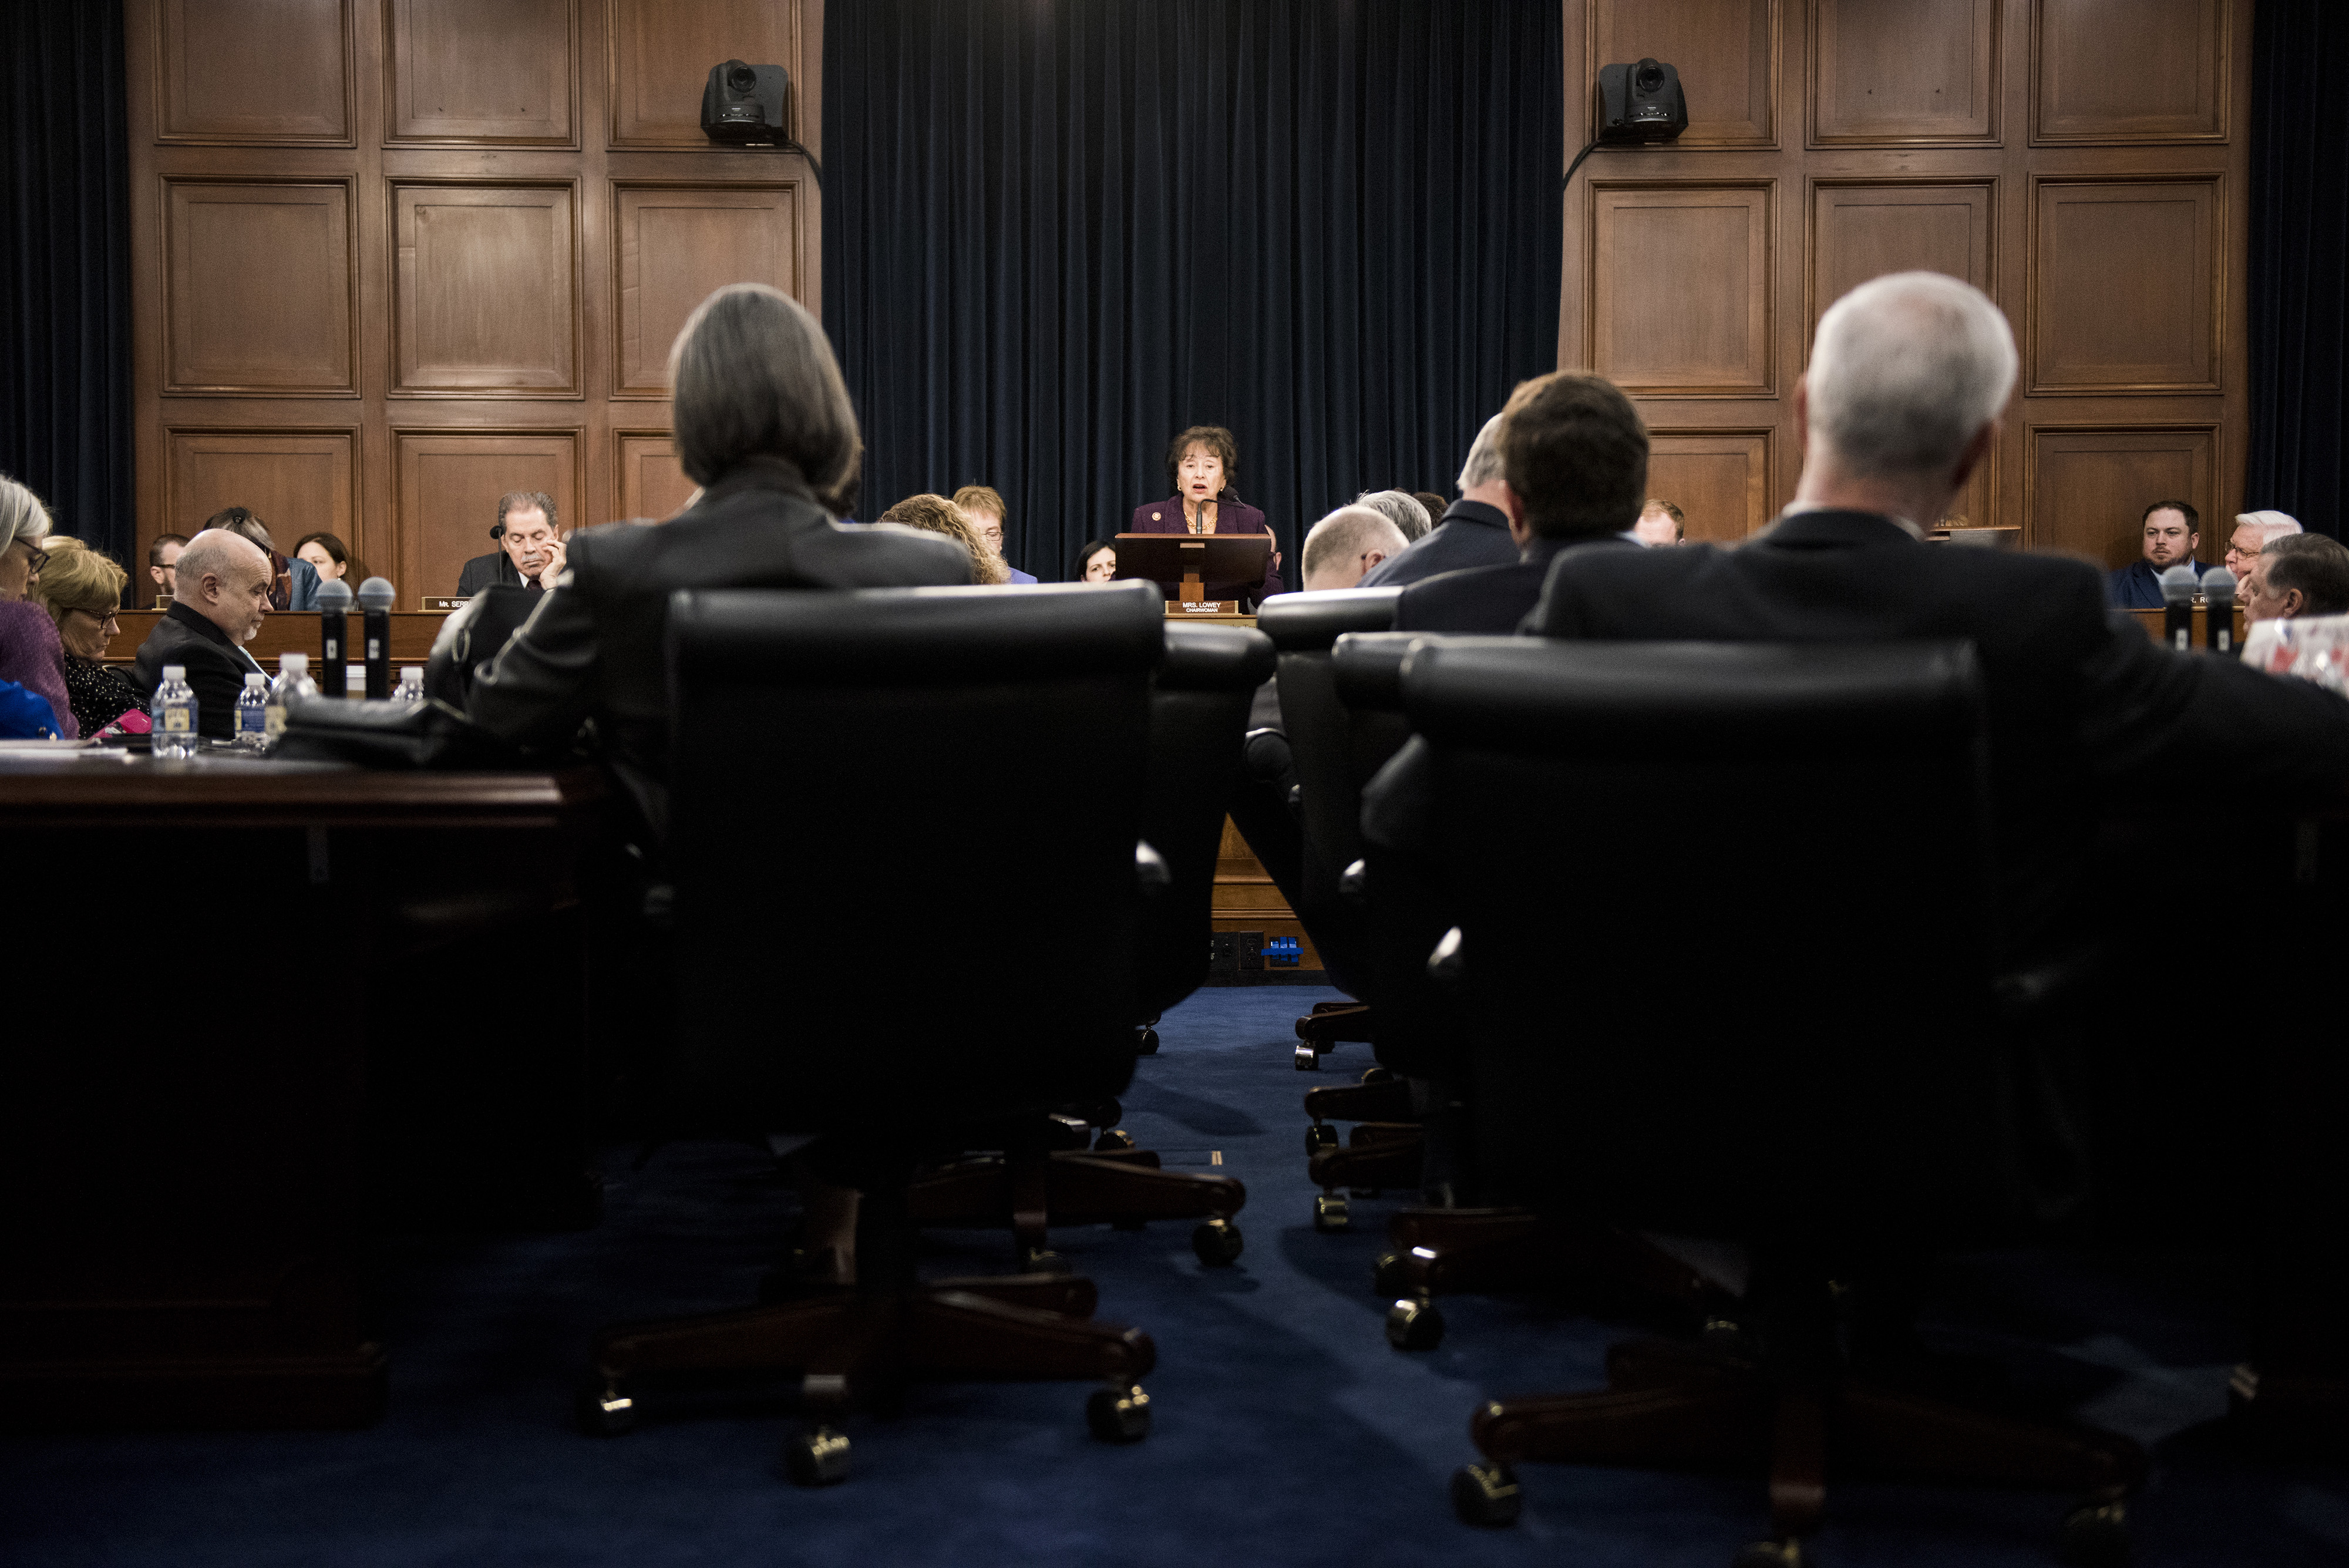 UNITED STATES - JANUARY 30: Chairwoman Nita Lowey, D-N.Y., conducts the House Appropriations Committee meeting to organize for the 116th Congress on Wednesday, Jan. 30, 2019. (Photo By Bill Clark/CQ Roll Call)